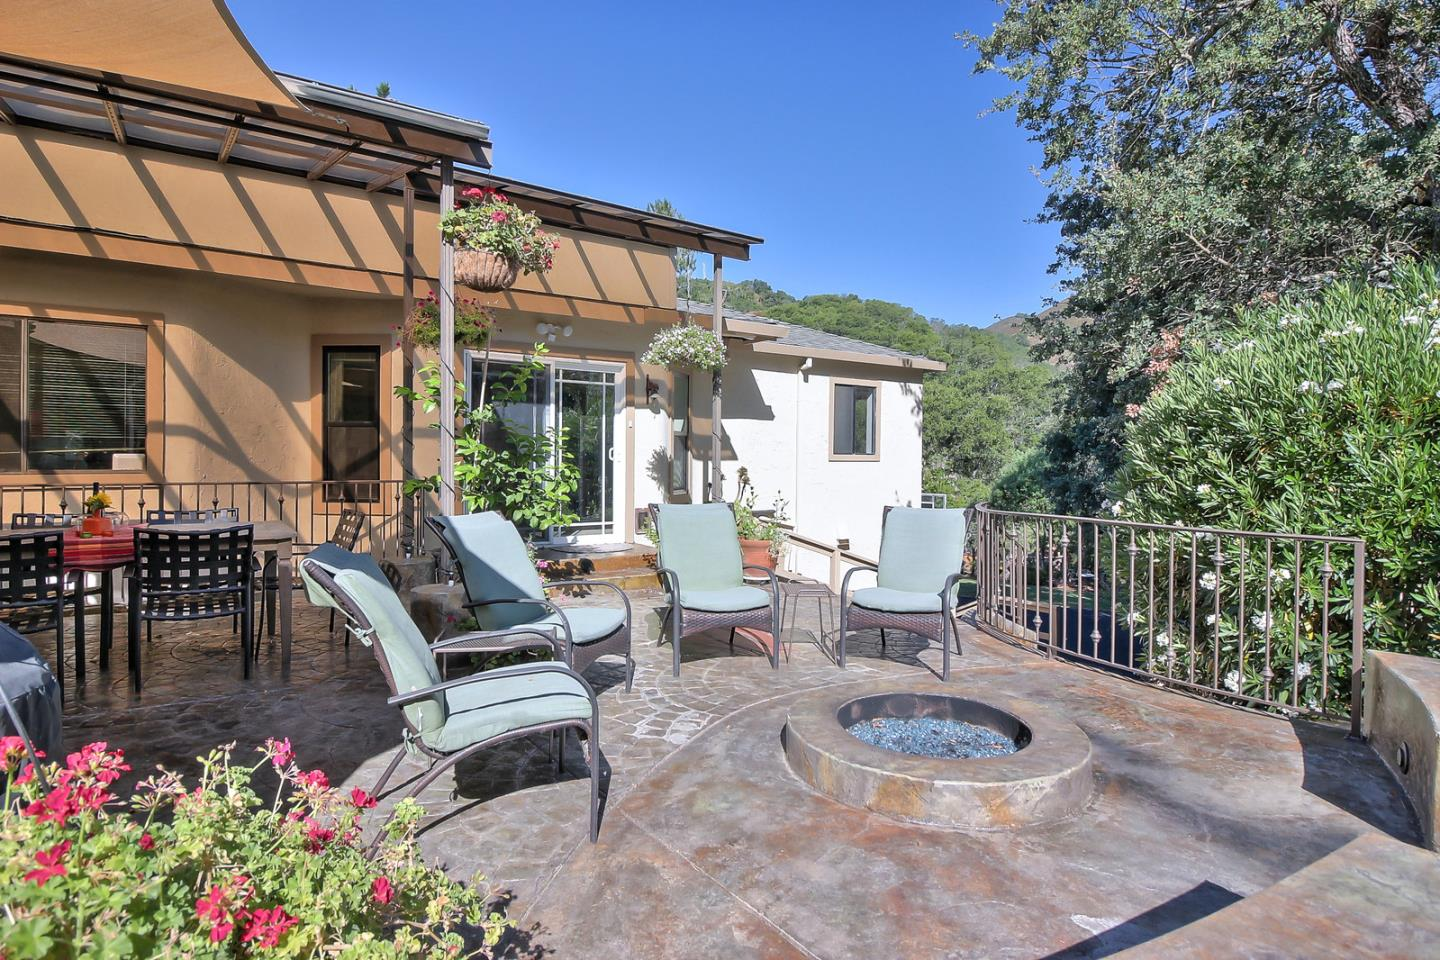 Additional photo for property listing at 13935 Sheila Avenue  Morgan Hill, California 95037 United States